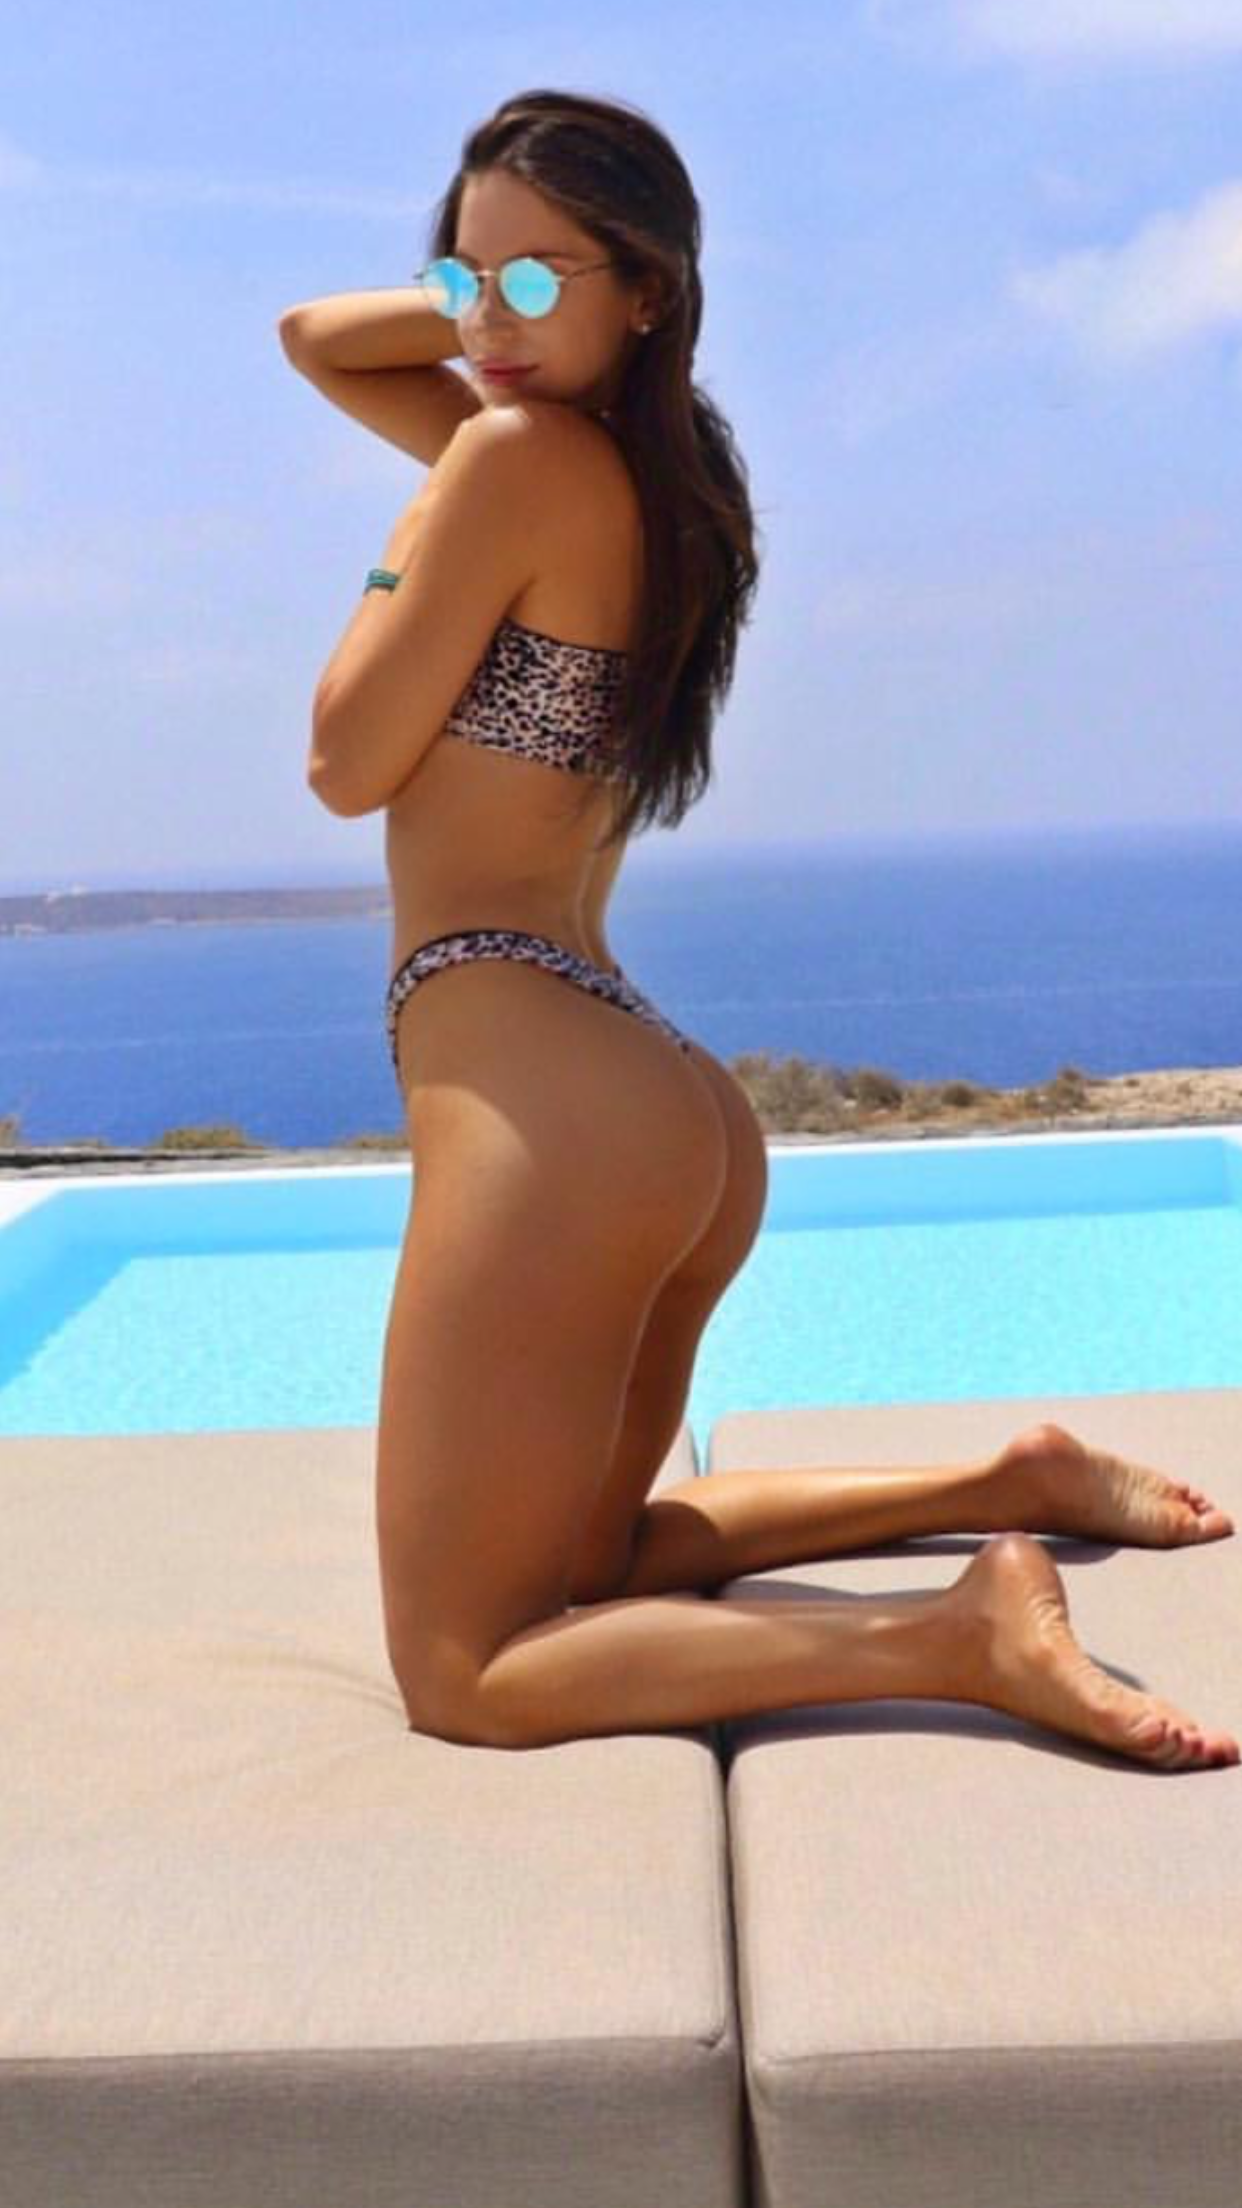 Feet Jen Selter nudes (63 foto and video), Tits, Fappening, Instagram, bra 2015